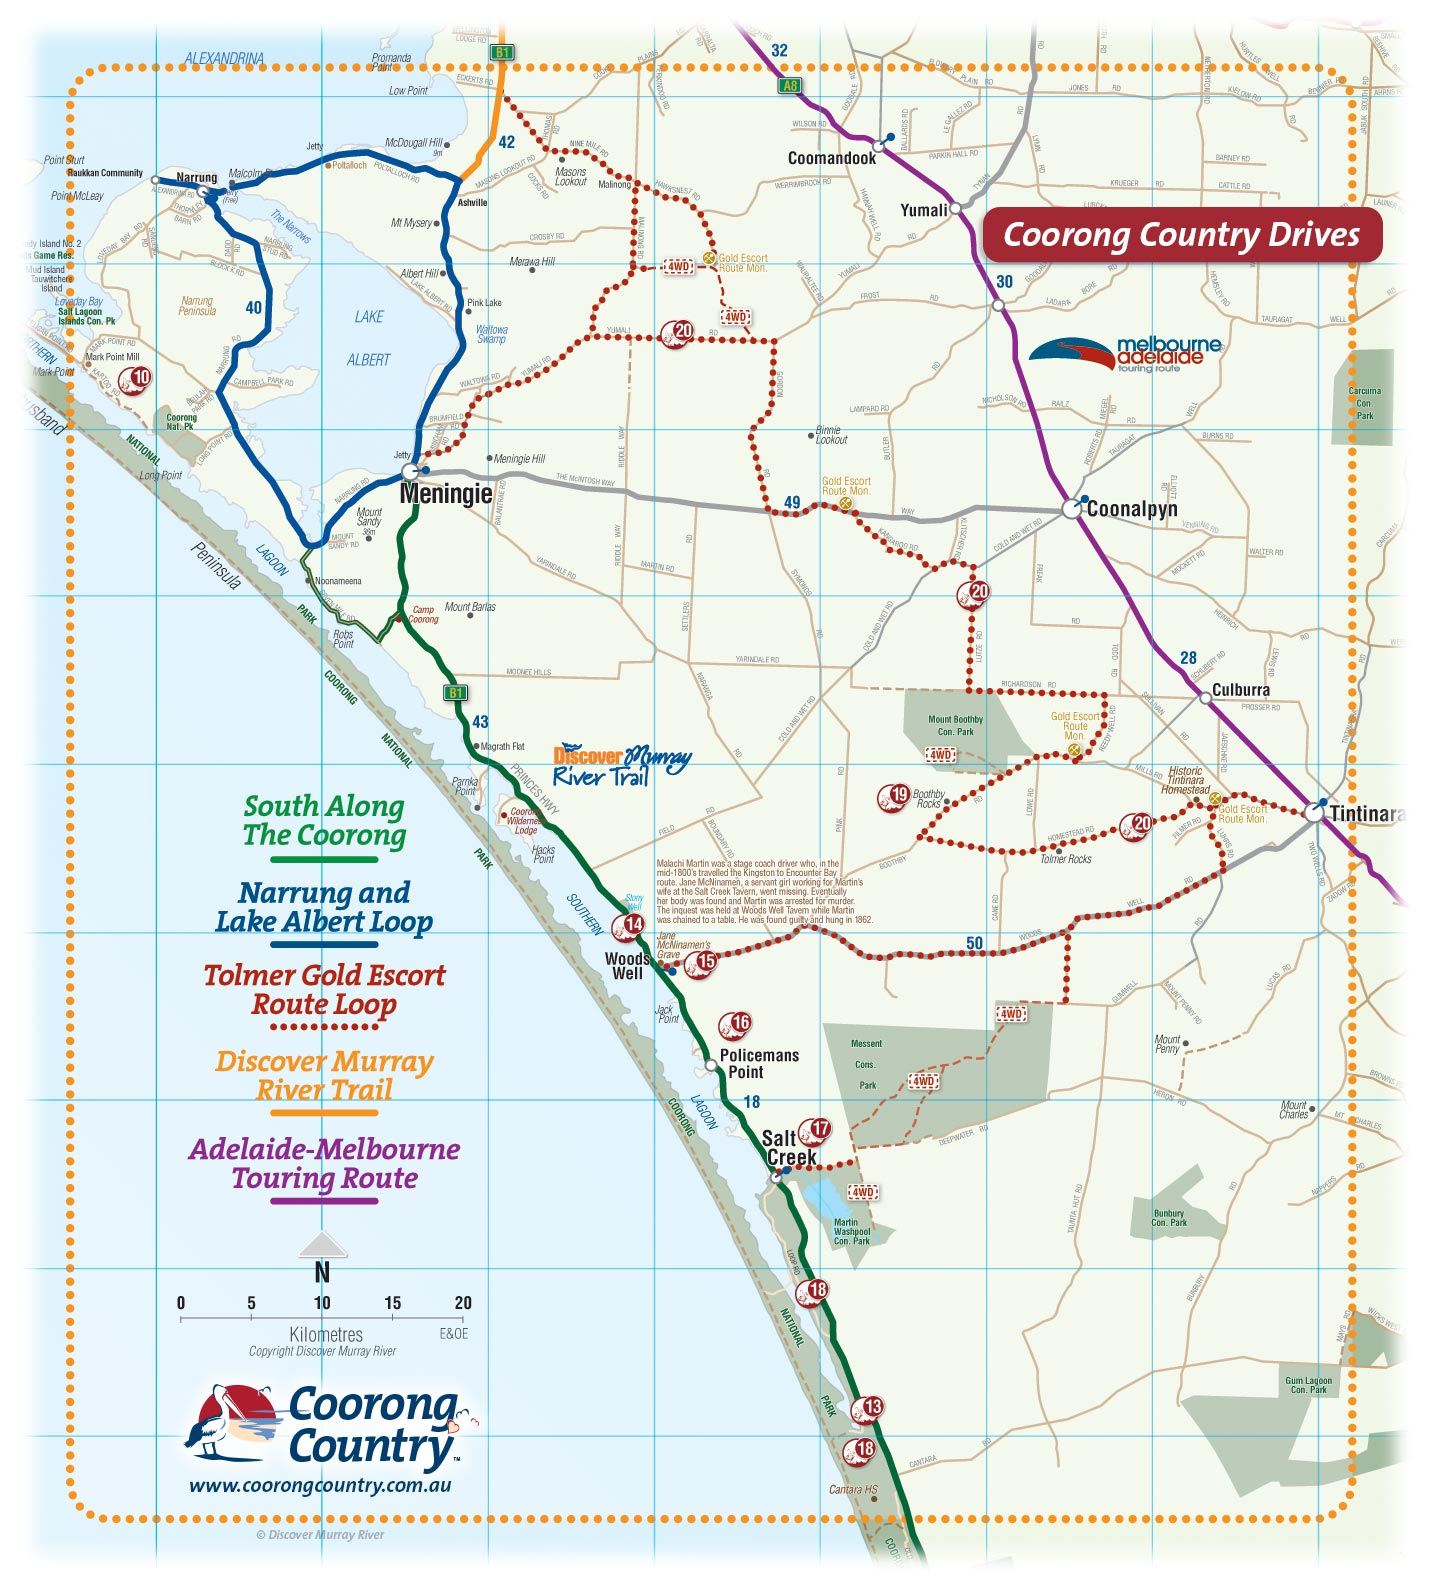 4wd Map Of Australia.Coorong Country And Meningie Maps South Australia